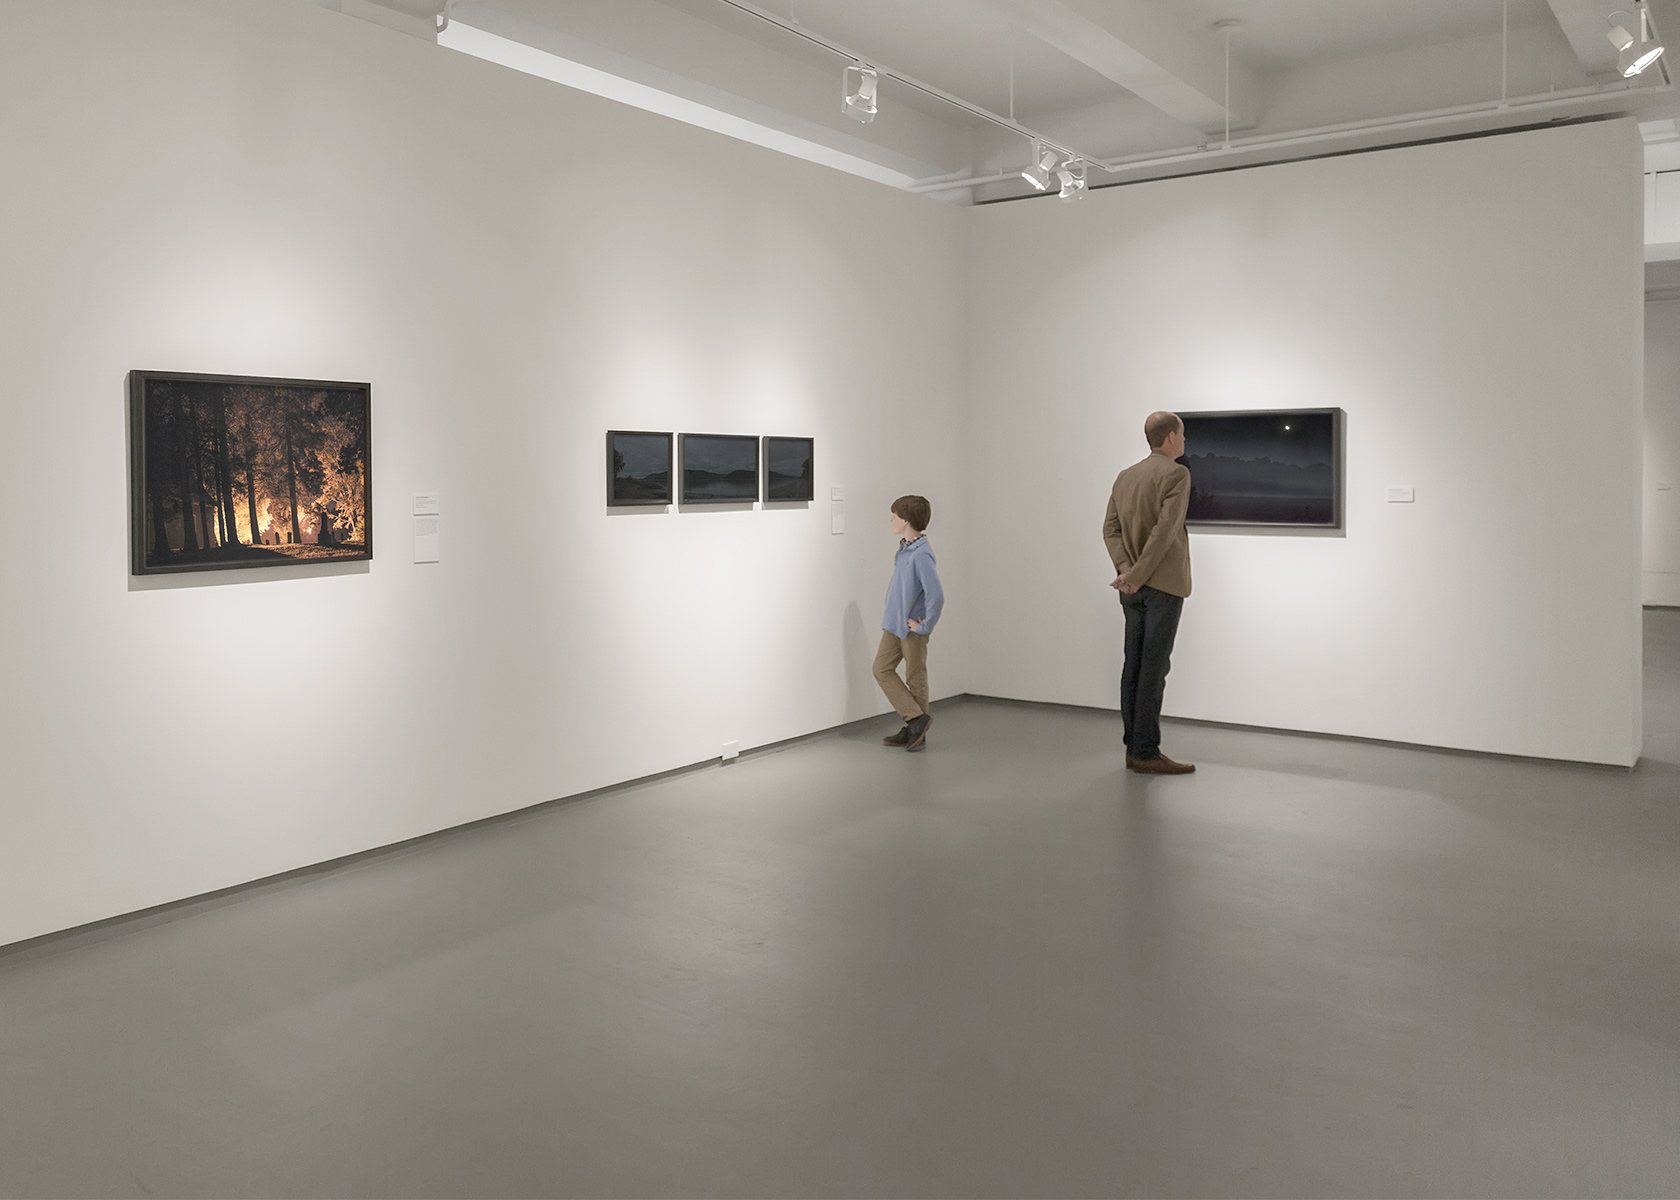 Southern Exposure: Portraits of a Changing Landscape,   MOCA | Jacksonville, FL, 2015 with William Christenberry, Deborah Luster, Sally Mann, Richard Misrach, Andrew Moore and Alec Soth.